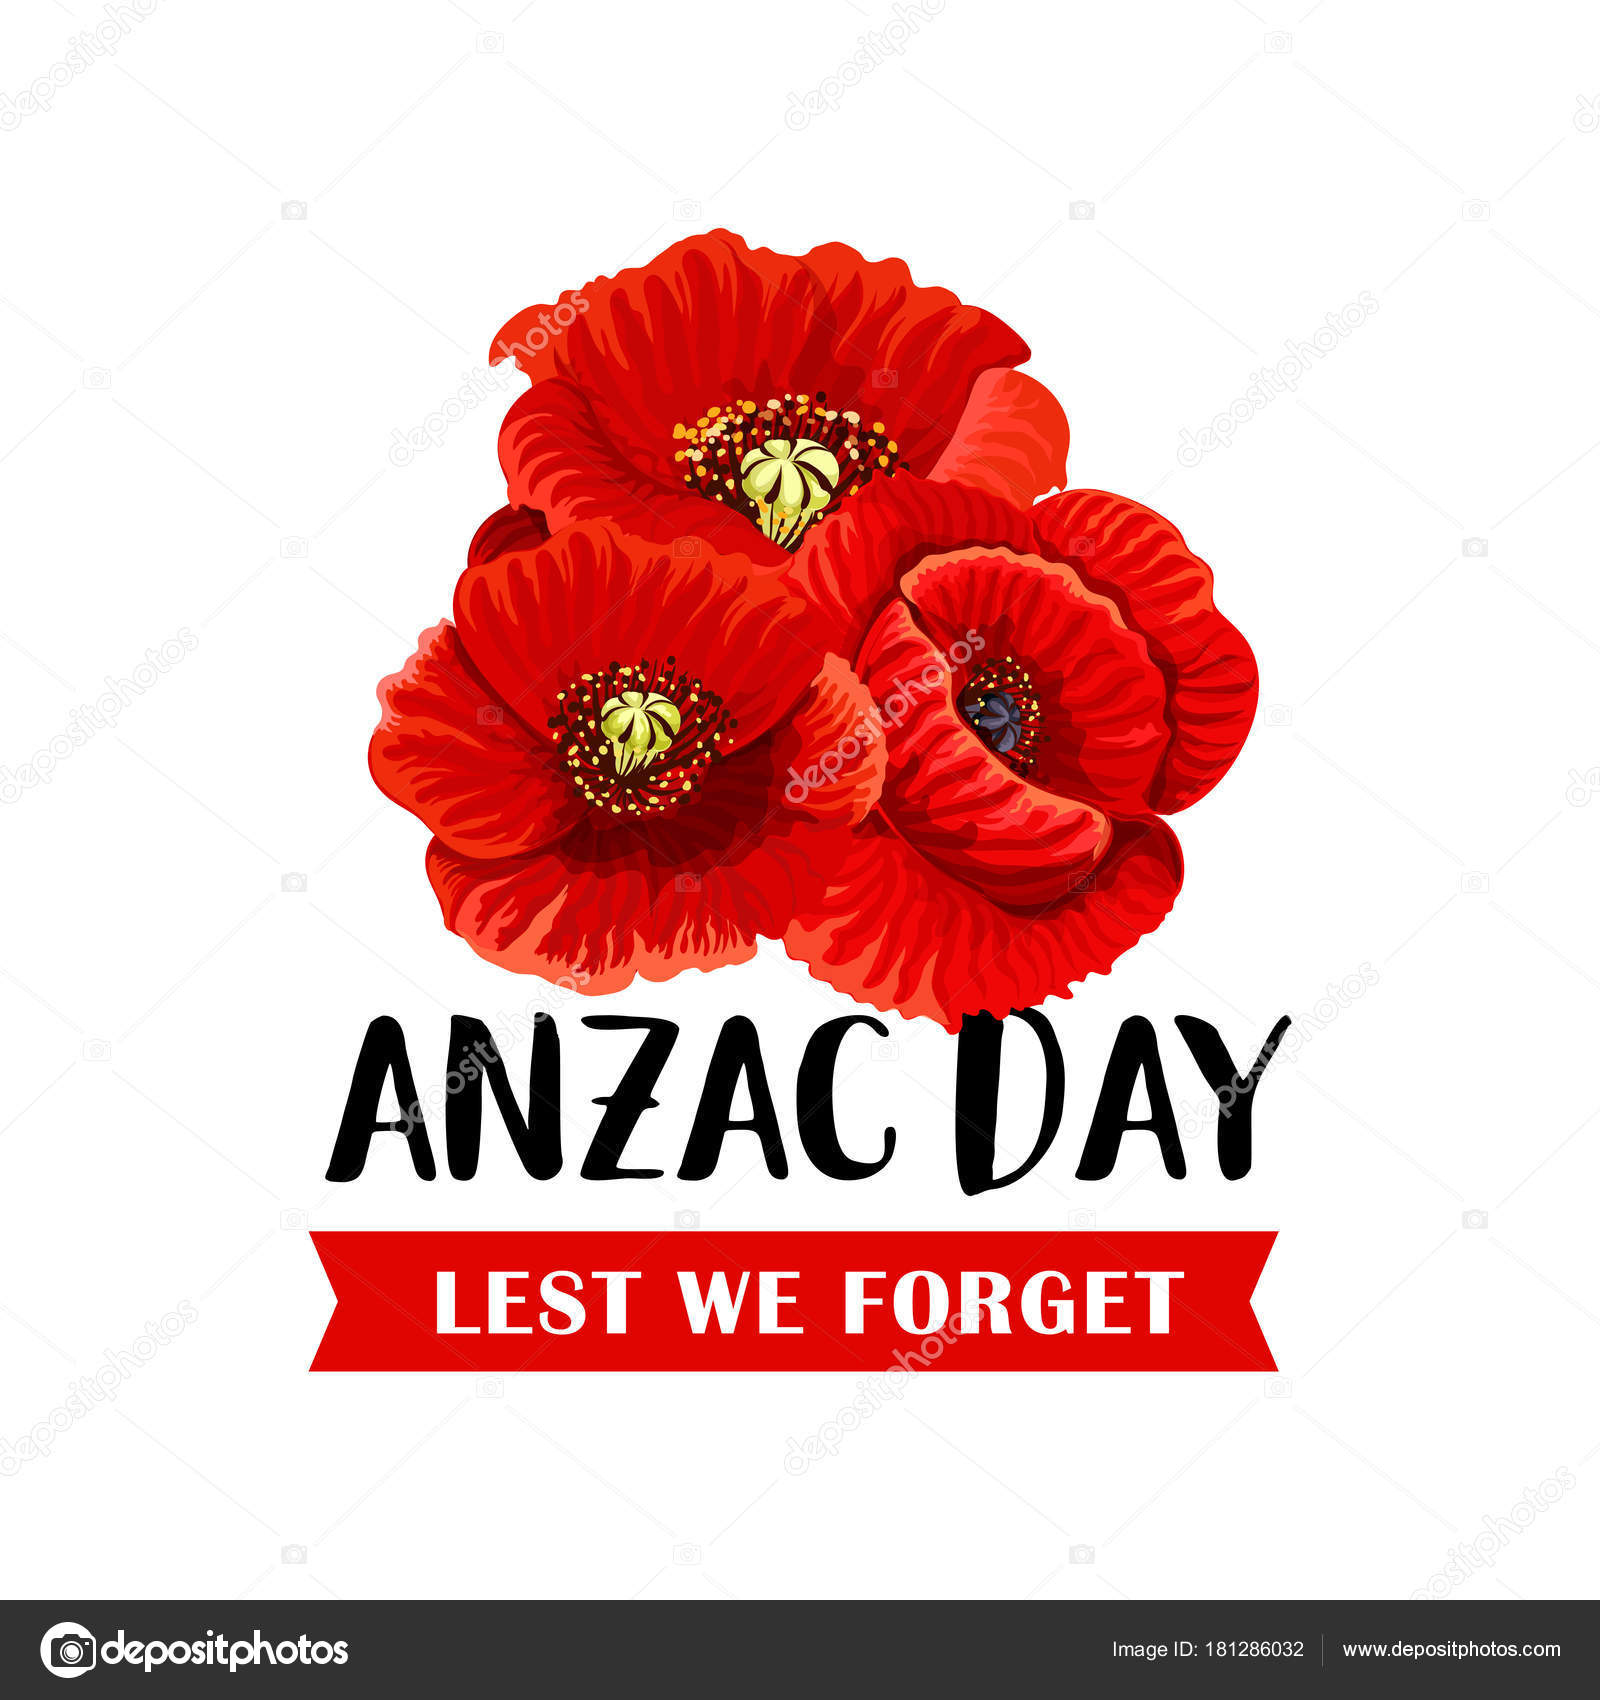 Anzac remembrance day icon with red poppy flower stock vector anzac remembrance day icon of red poppy flower bunch floral symbol of australian and new zealand army corps day with lest we forget ribbon banner for buycottarizona